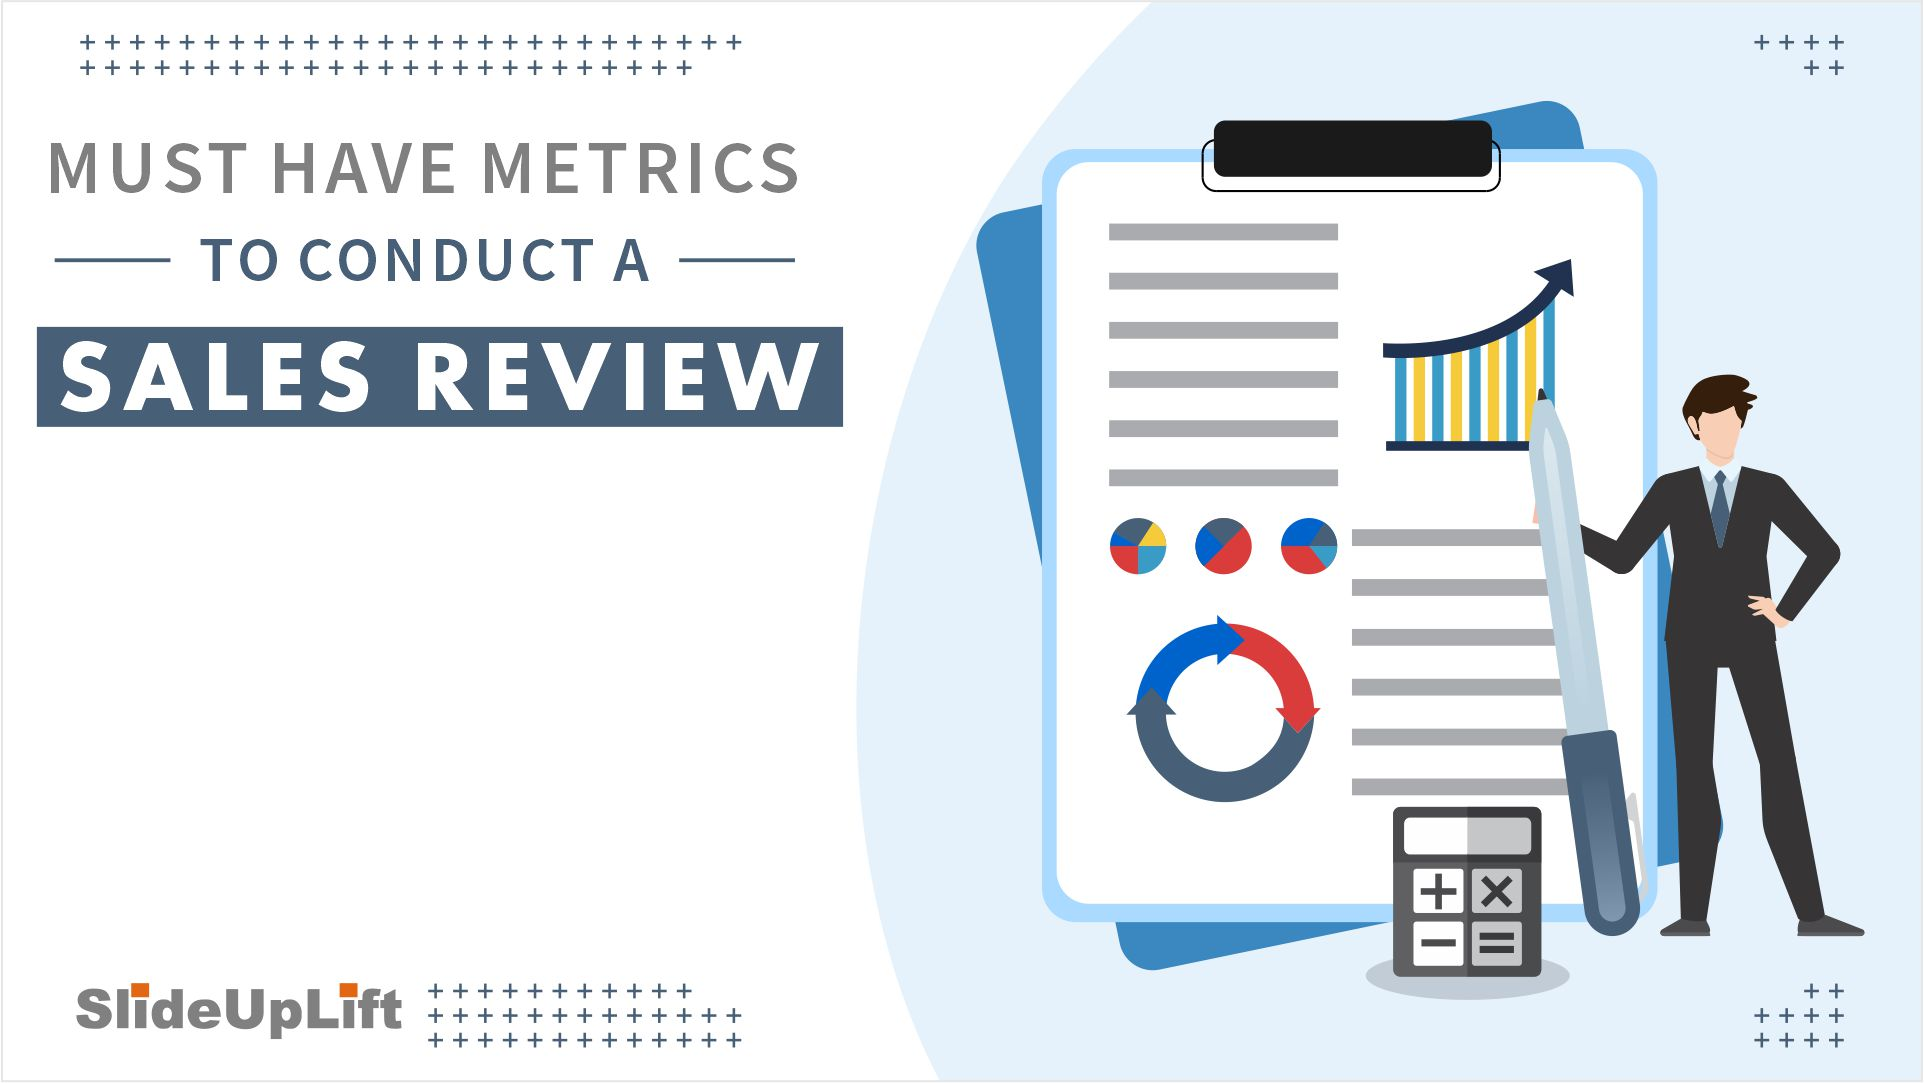 Must Have Metrics to Conduct a Sales Review